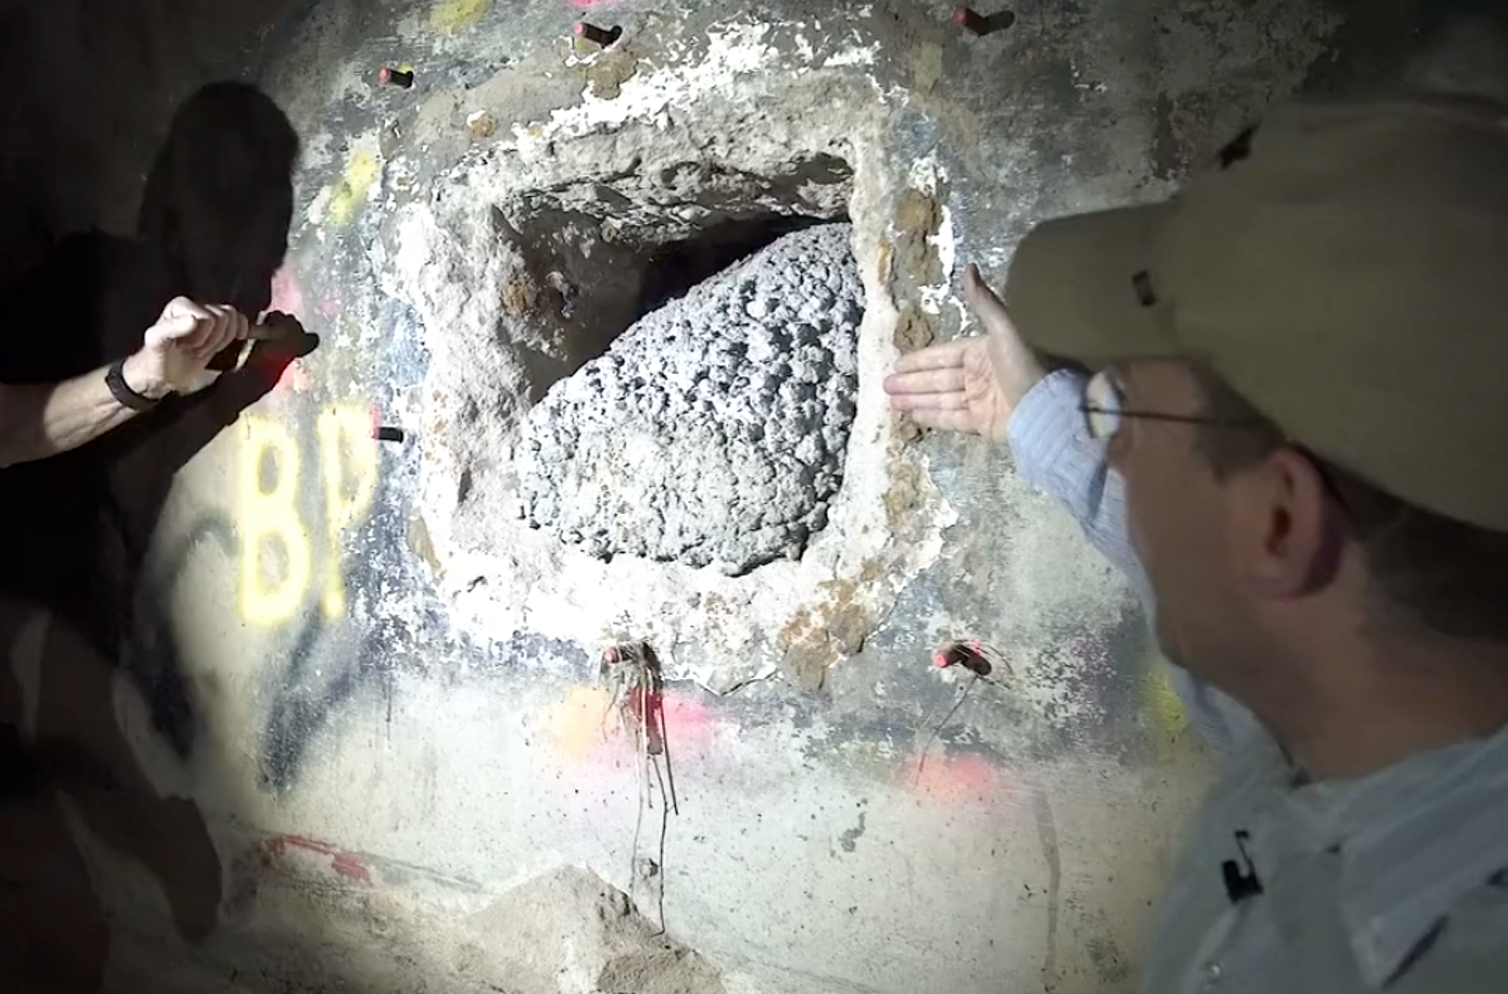 Freelancer Ioan Grillo points to a hole in a drainage tunnel underneath the city of Nogales, at the US-Mexico border. Drug traffickers often cut through the tunnel wall to get into the United States. Photo credit: Matt Cipollone, CC BY